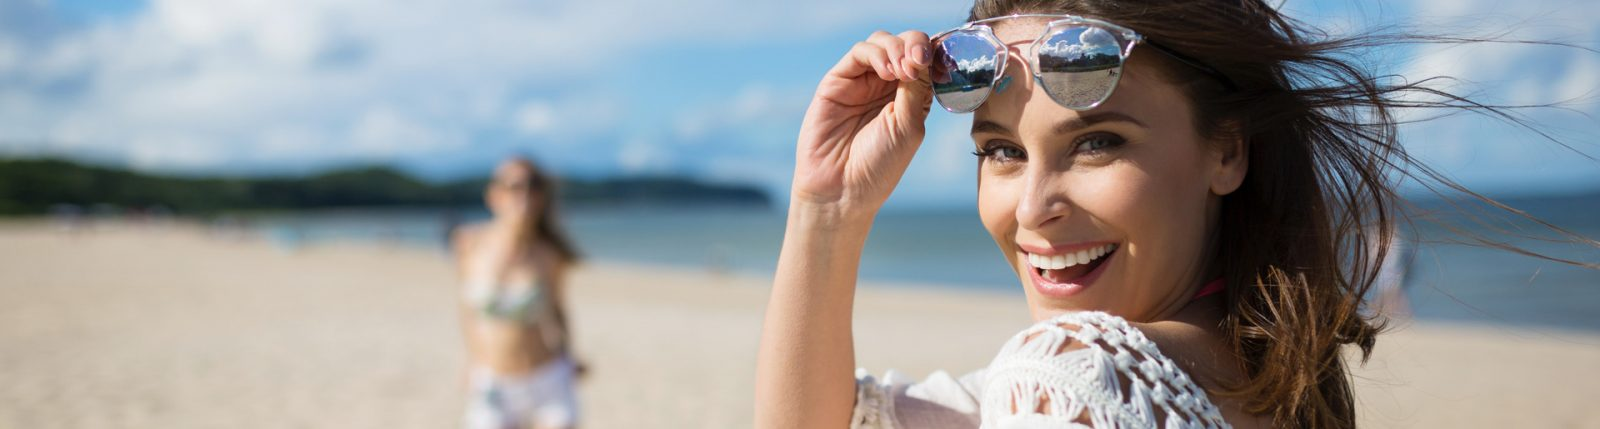 stock image of model smiling on beach, close up of teeth